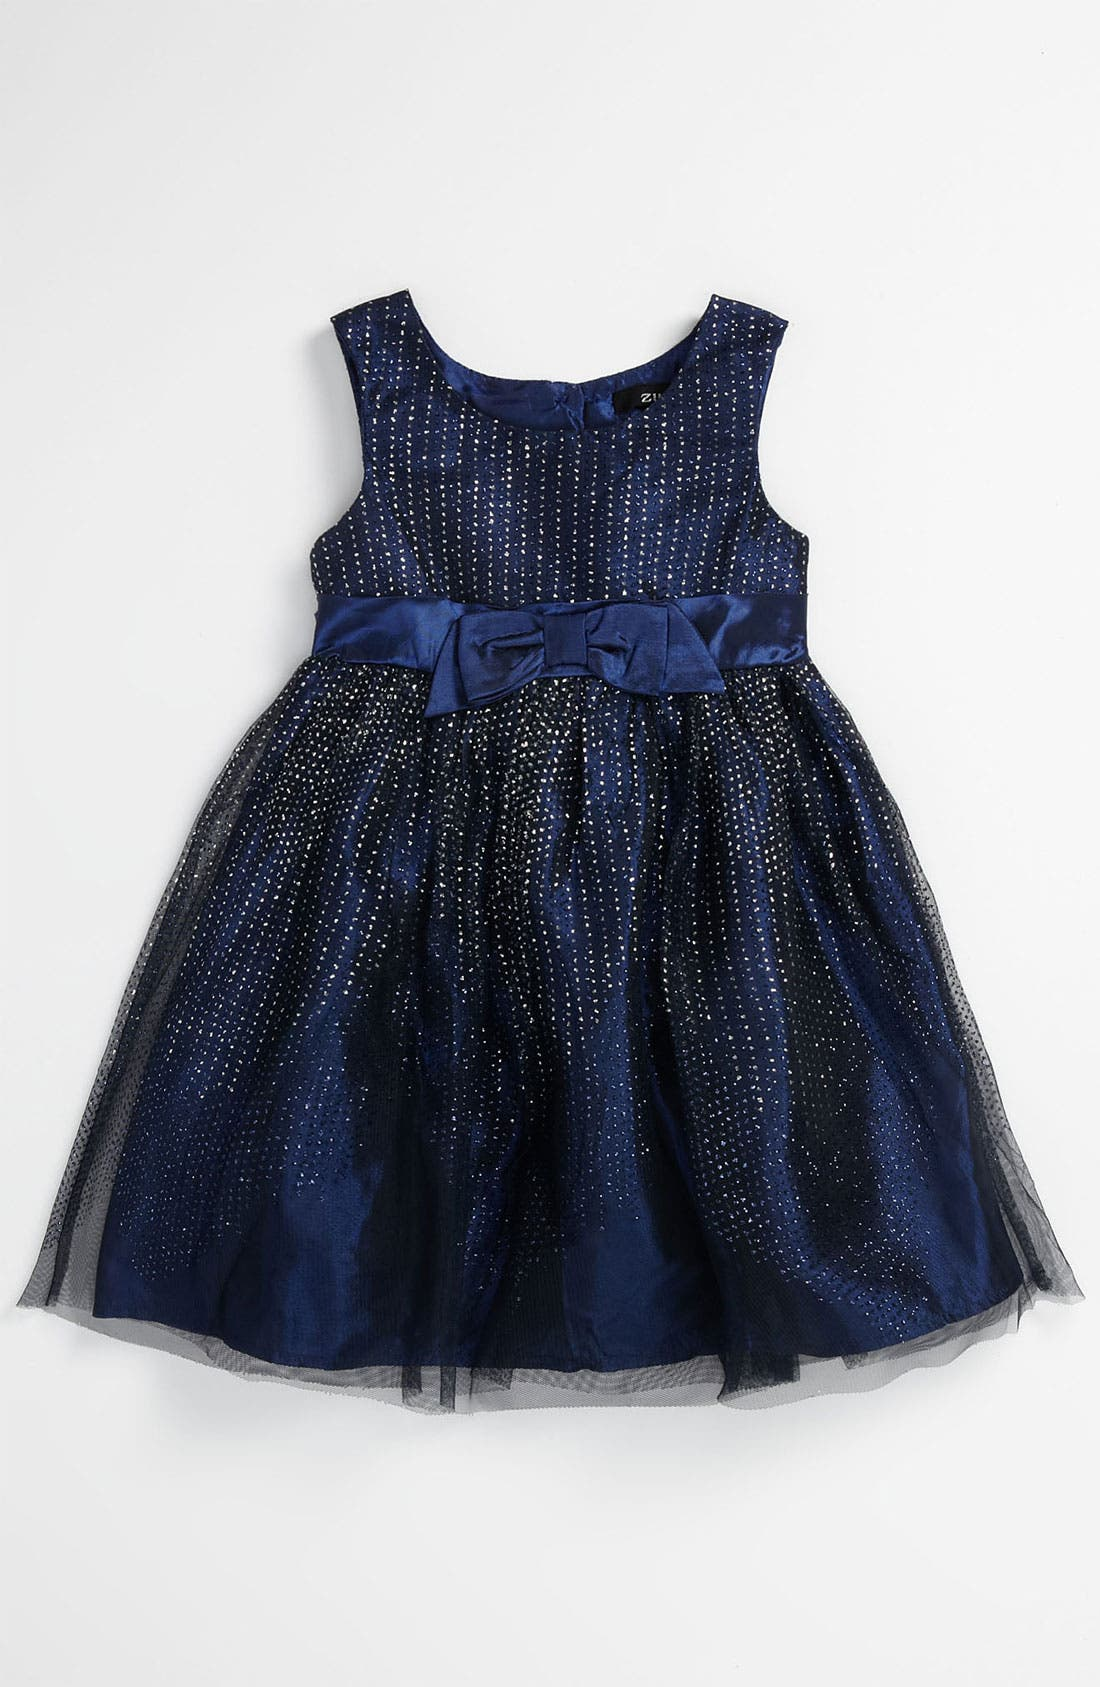 Main Image - Zunie Studded Dress (Toddler)